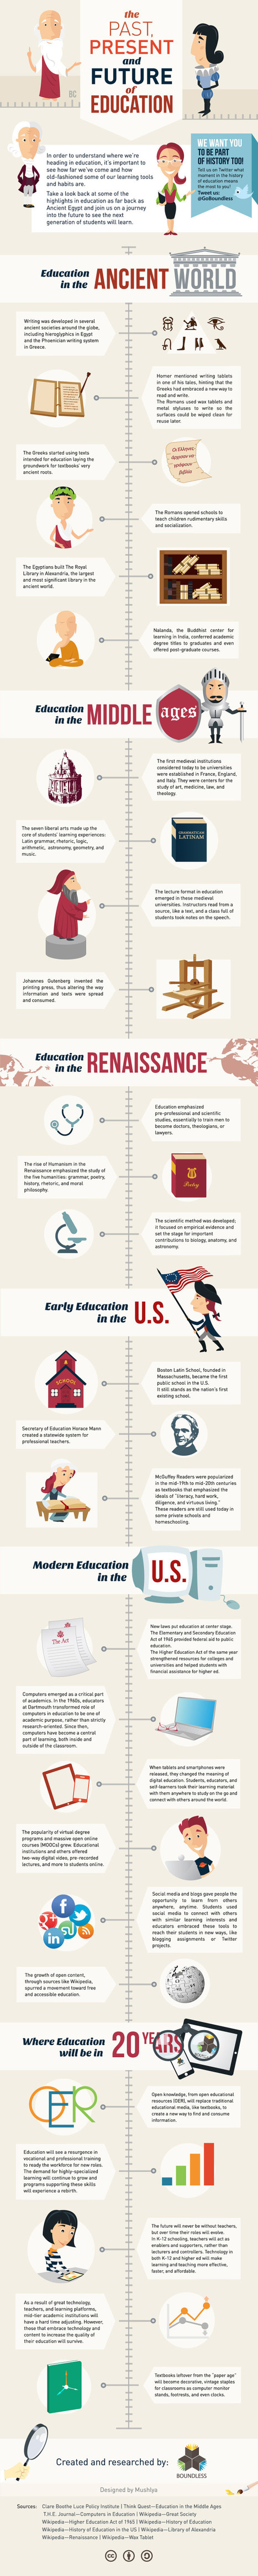 A Visual Guide To The Past, Present, And Future Of Education | Educational Leadership and Technology | Scoop.it